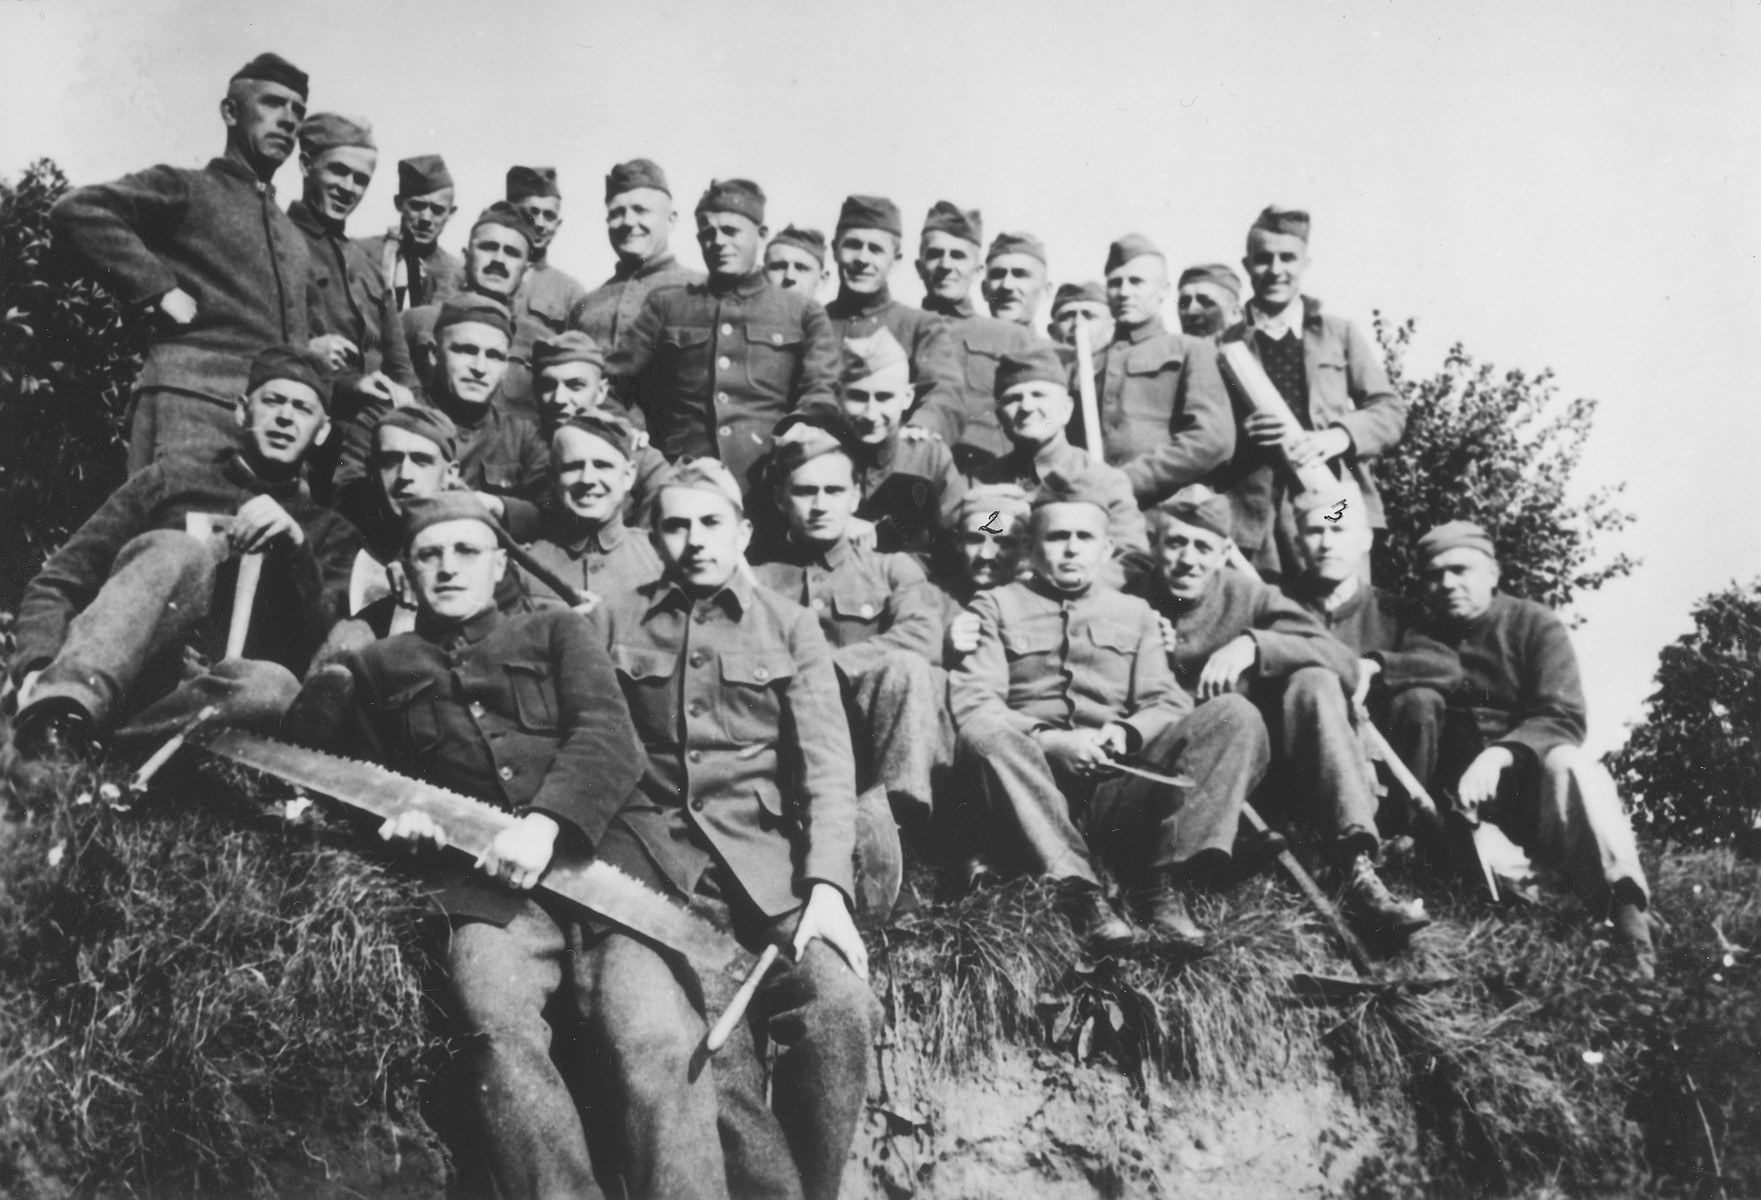 Group portrait of Czech political prisoners interned in Theresienstadt who were put to work felling trees.  Among those pictured is Oskar Bartolsic.